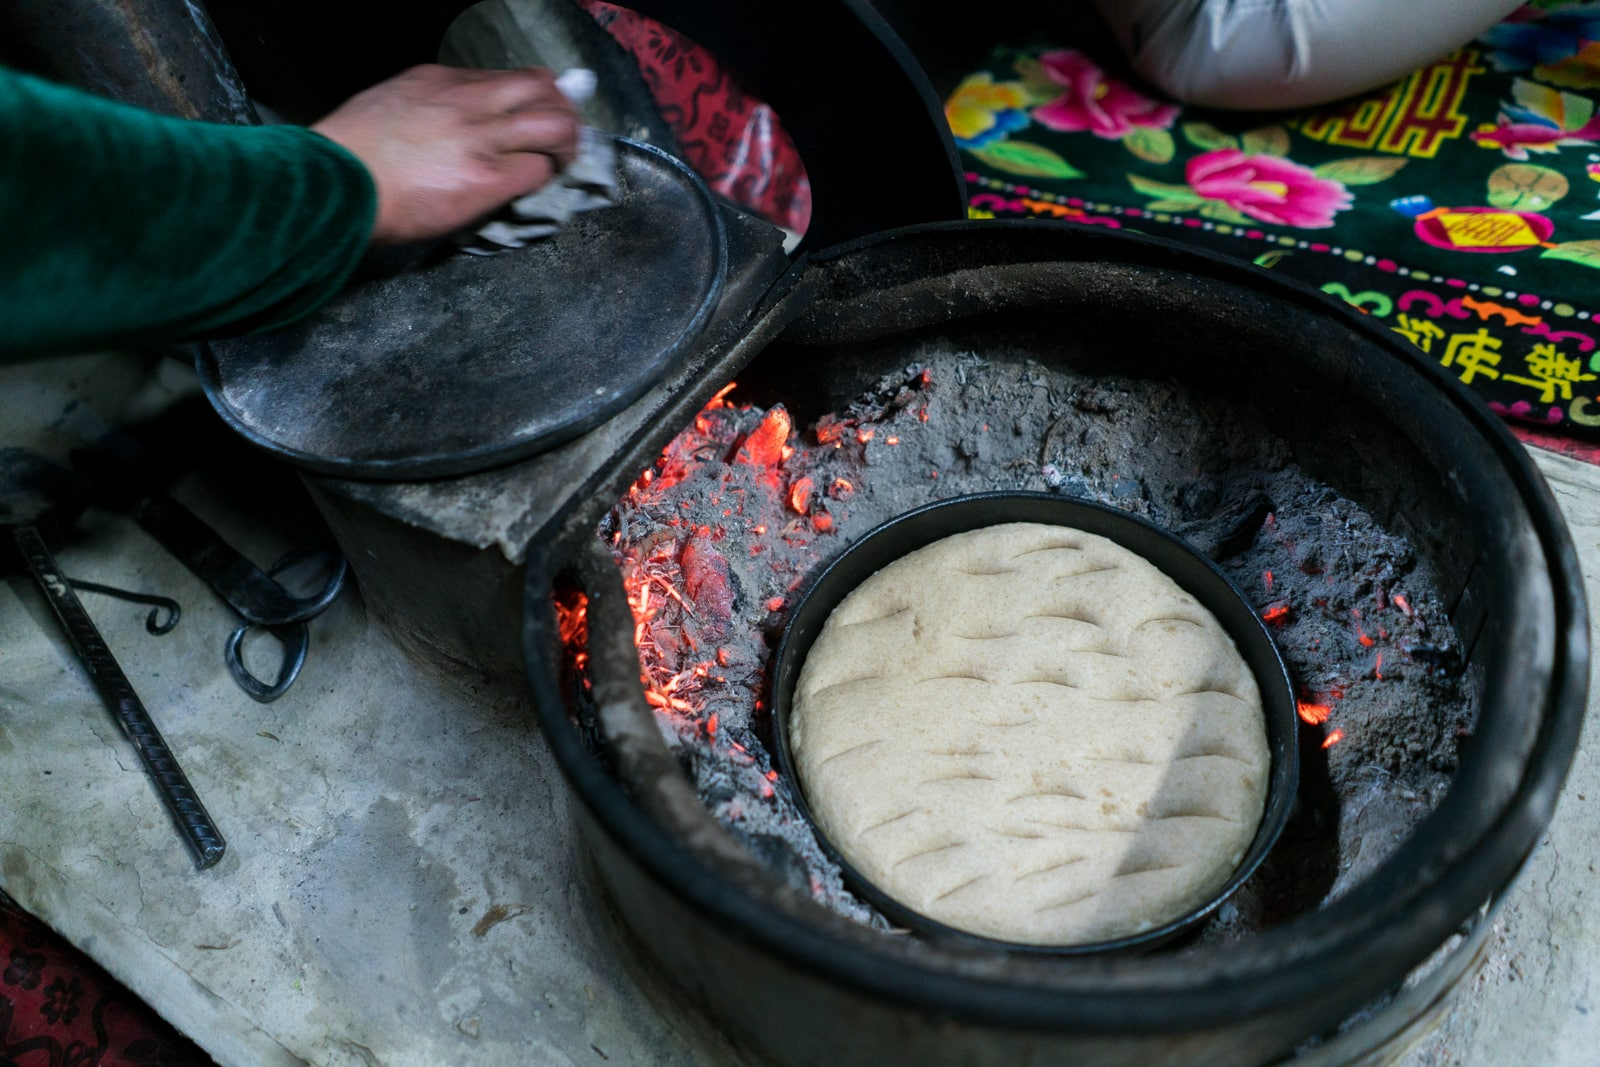 Homestay in Pakistan - Bread baking in the fire - Lost With Purpose travel blog